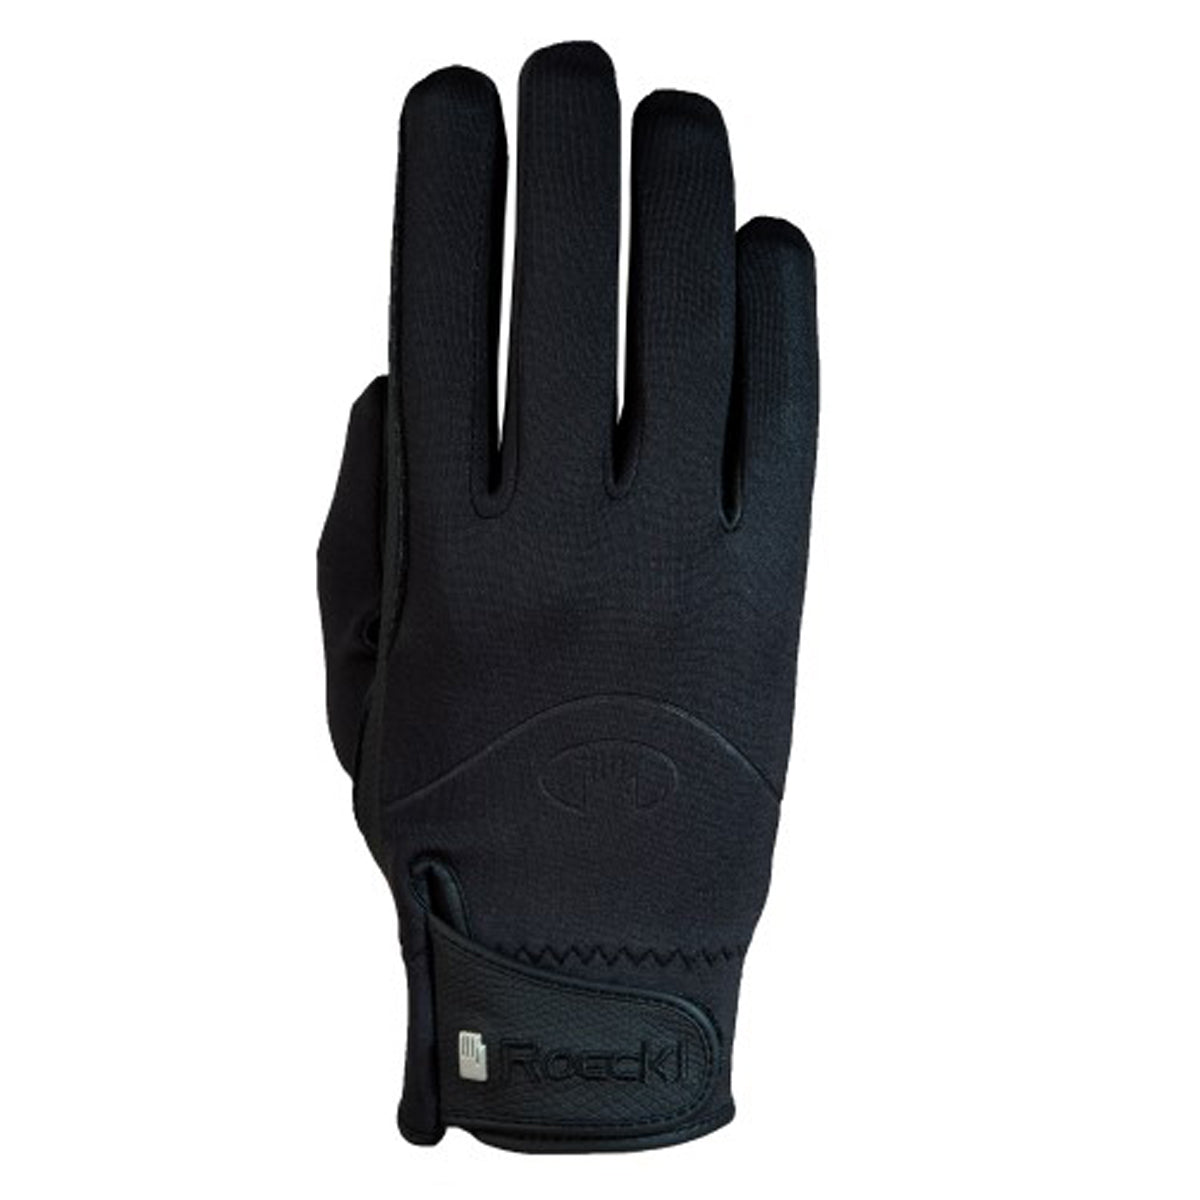 Roeckl Winchester Winter Riding Gloves